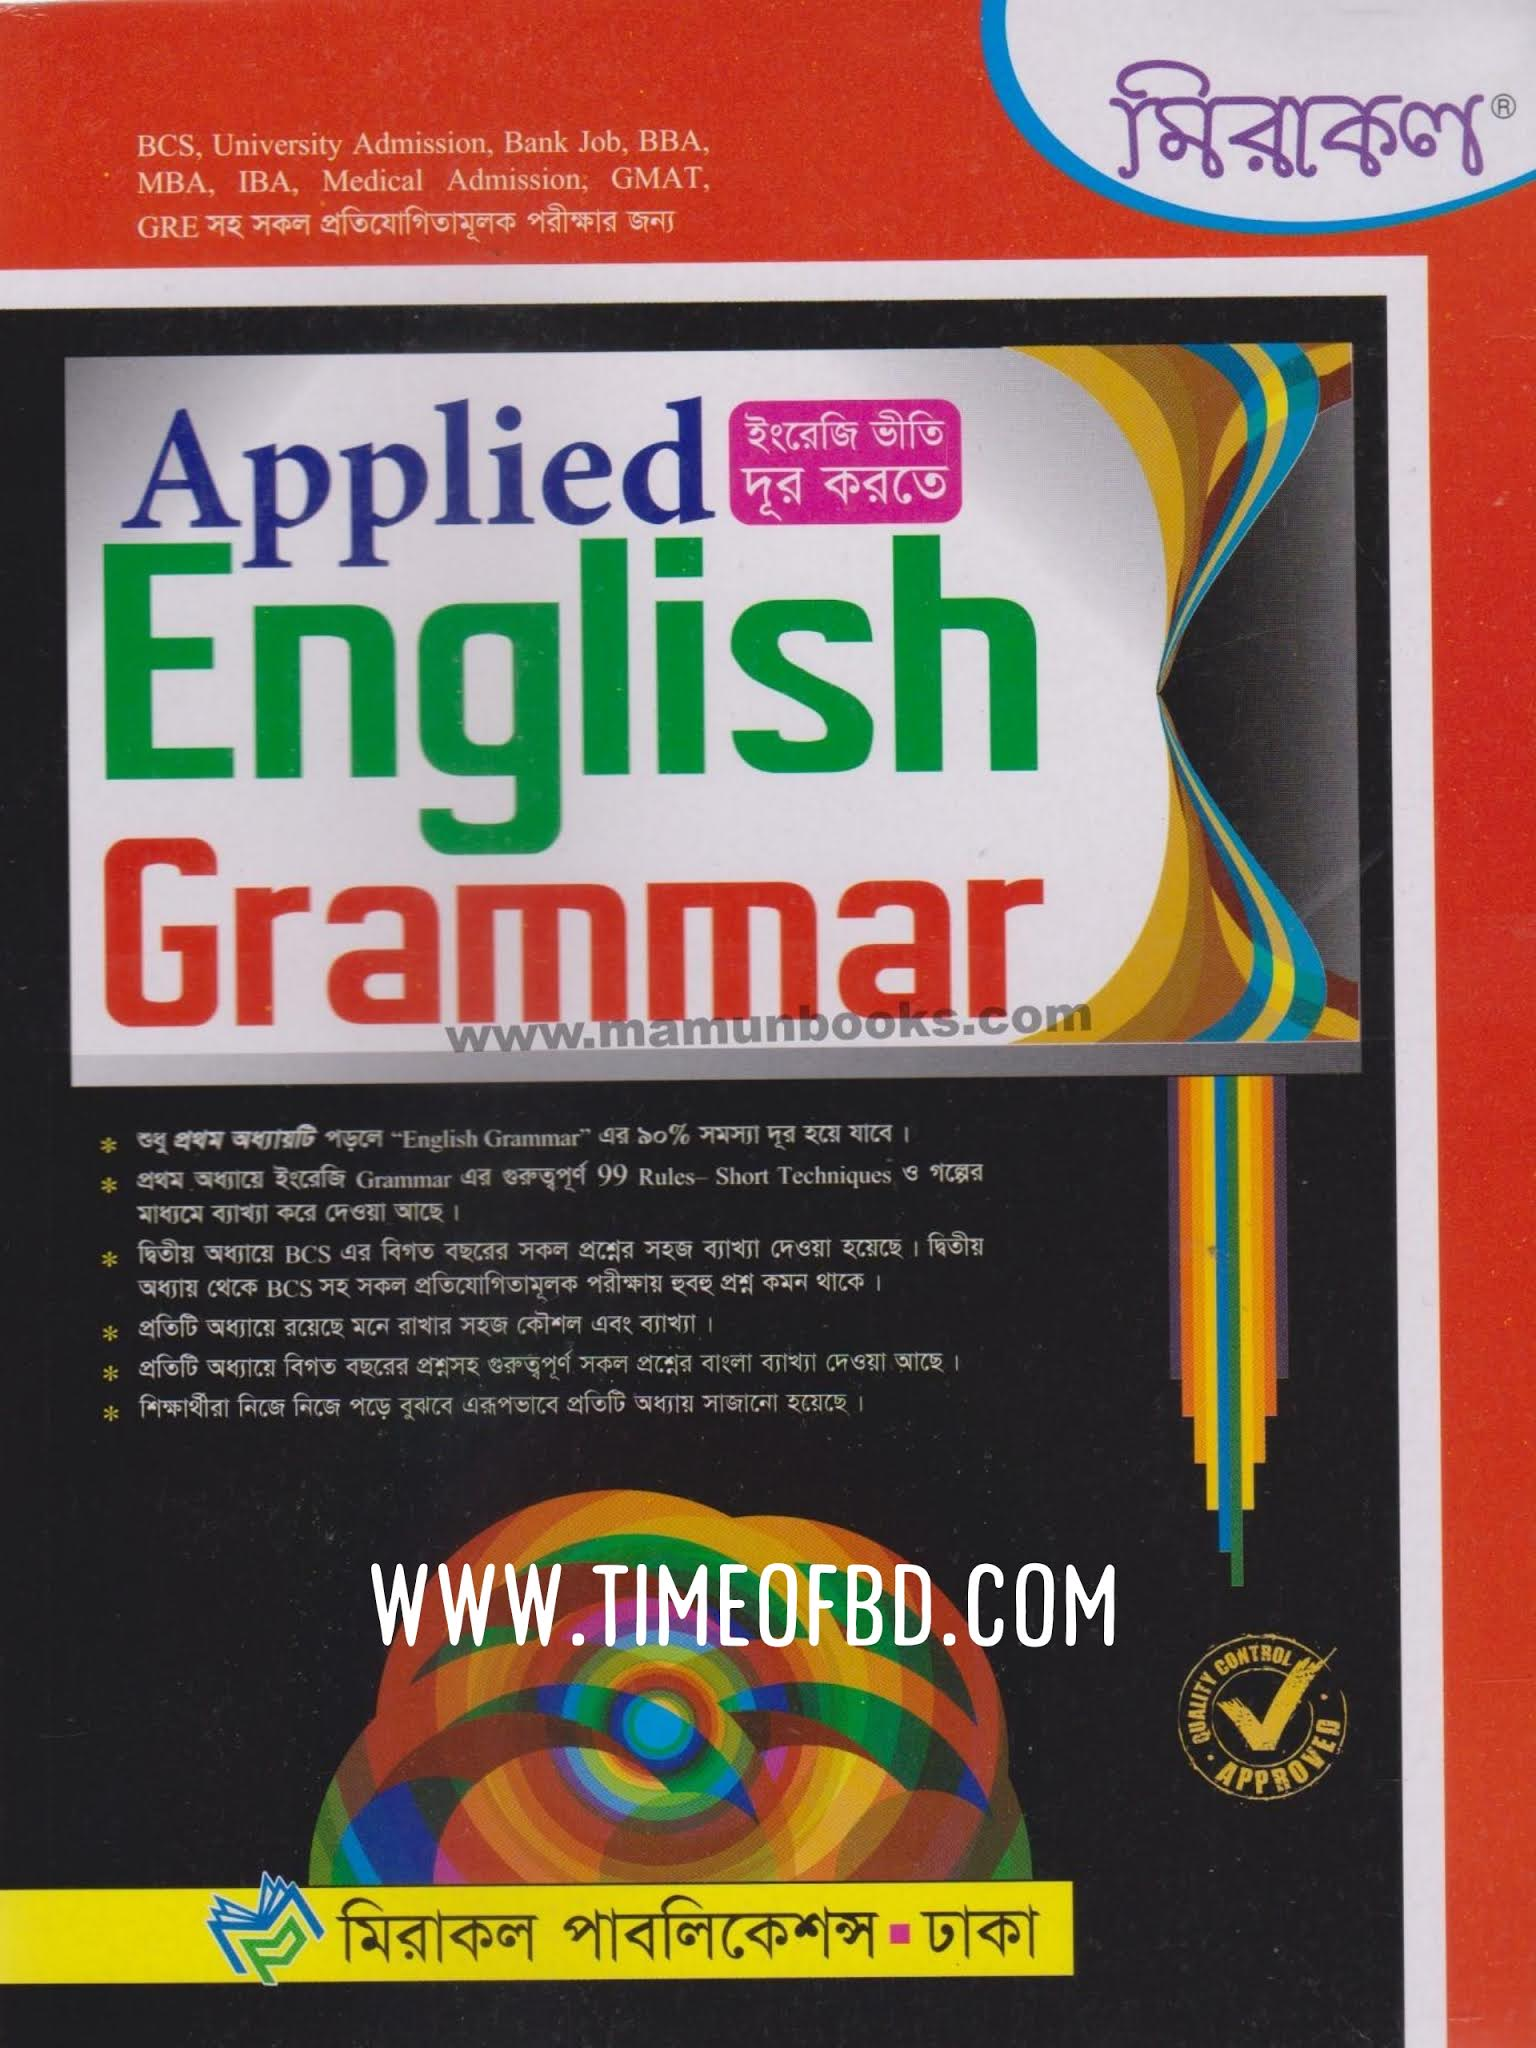 miracle applied english grammer online order link, miracle applied english grammer pdf file, miracle applied english grammer pdf download